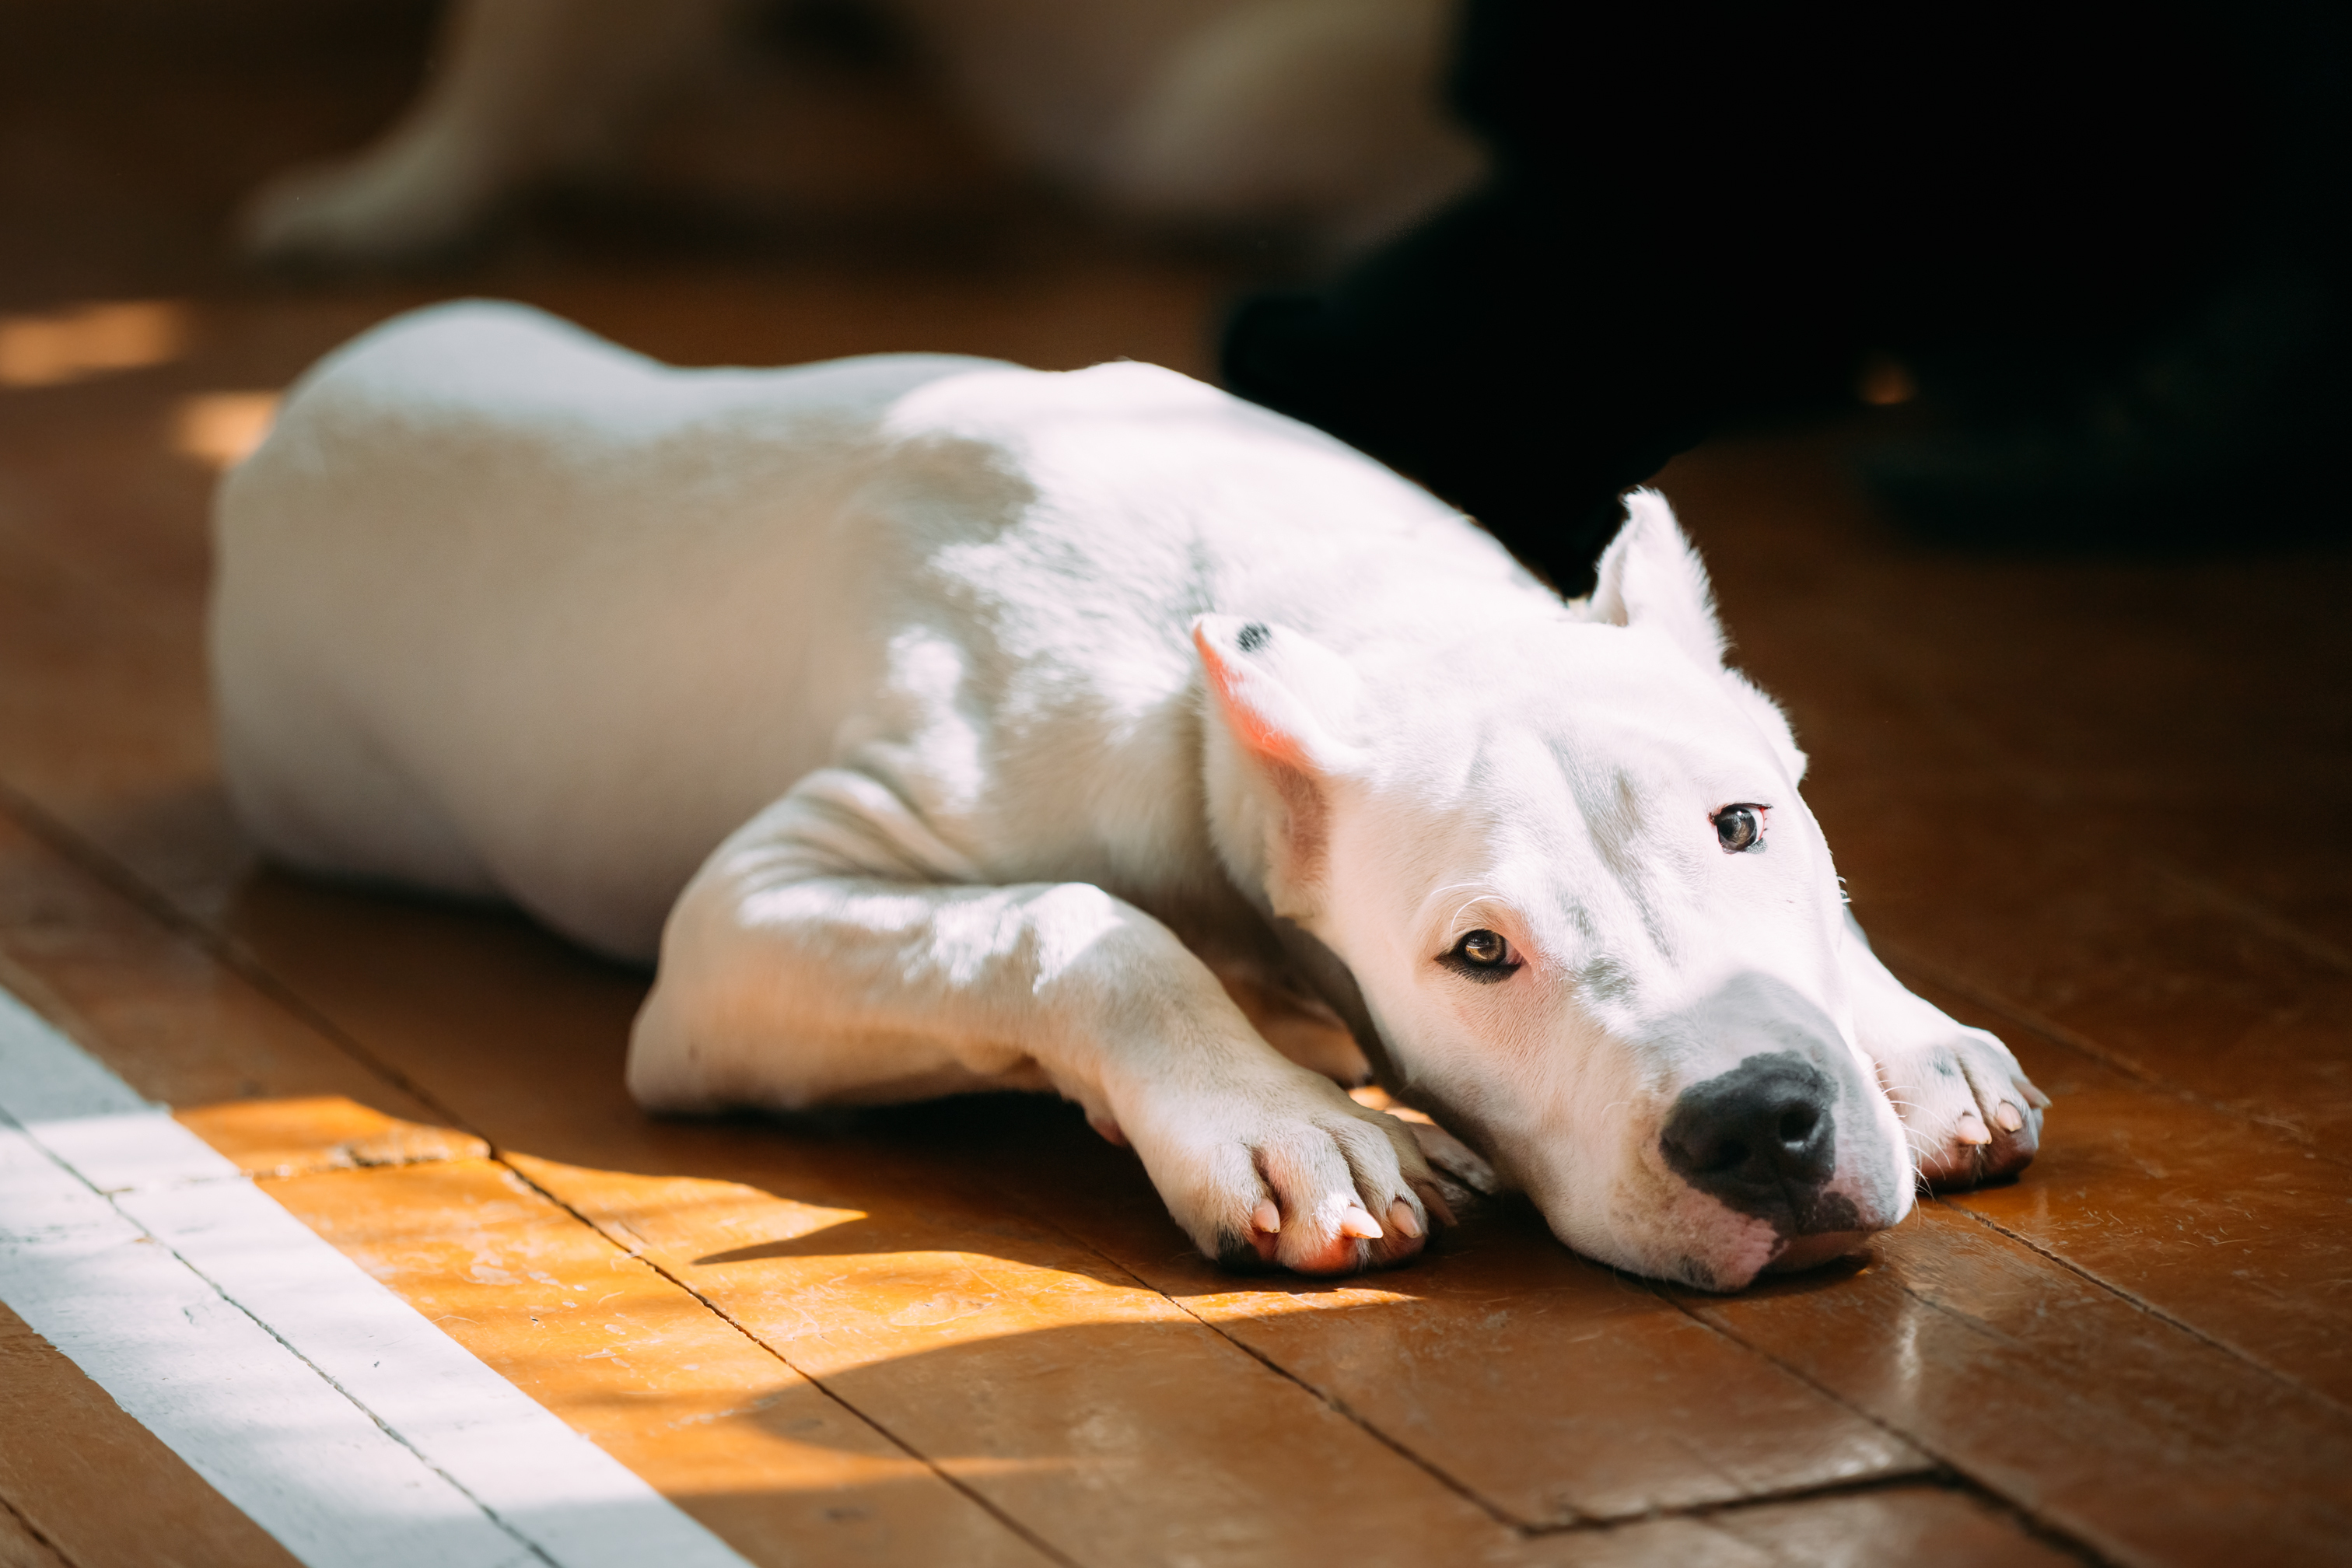 The Dogo Argentino also known as the Argentine Mastiff is a large, white, muscular dog that was deve